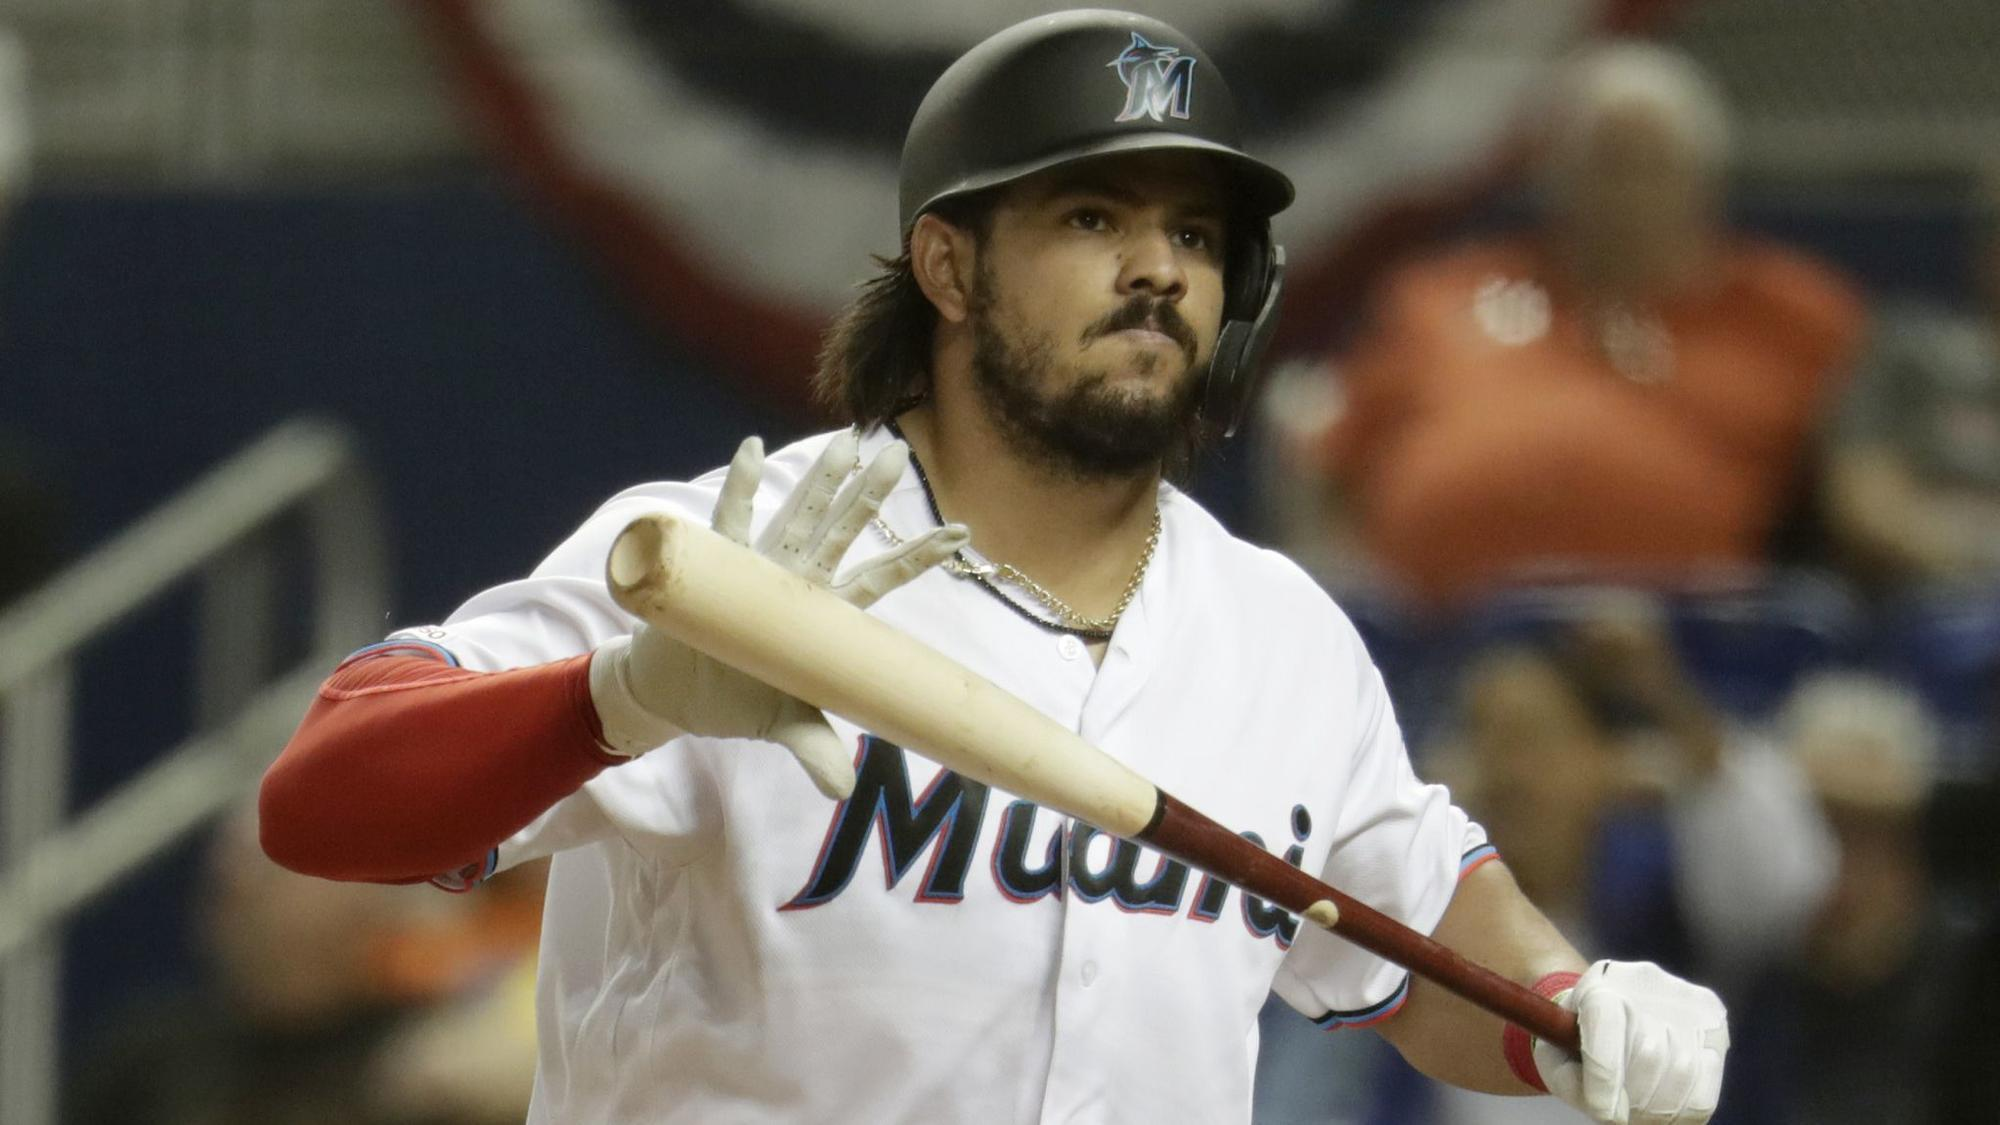 Marlins being cautious with Jorge Alfaro after awkward slide